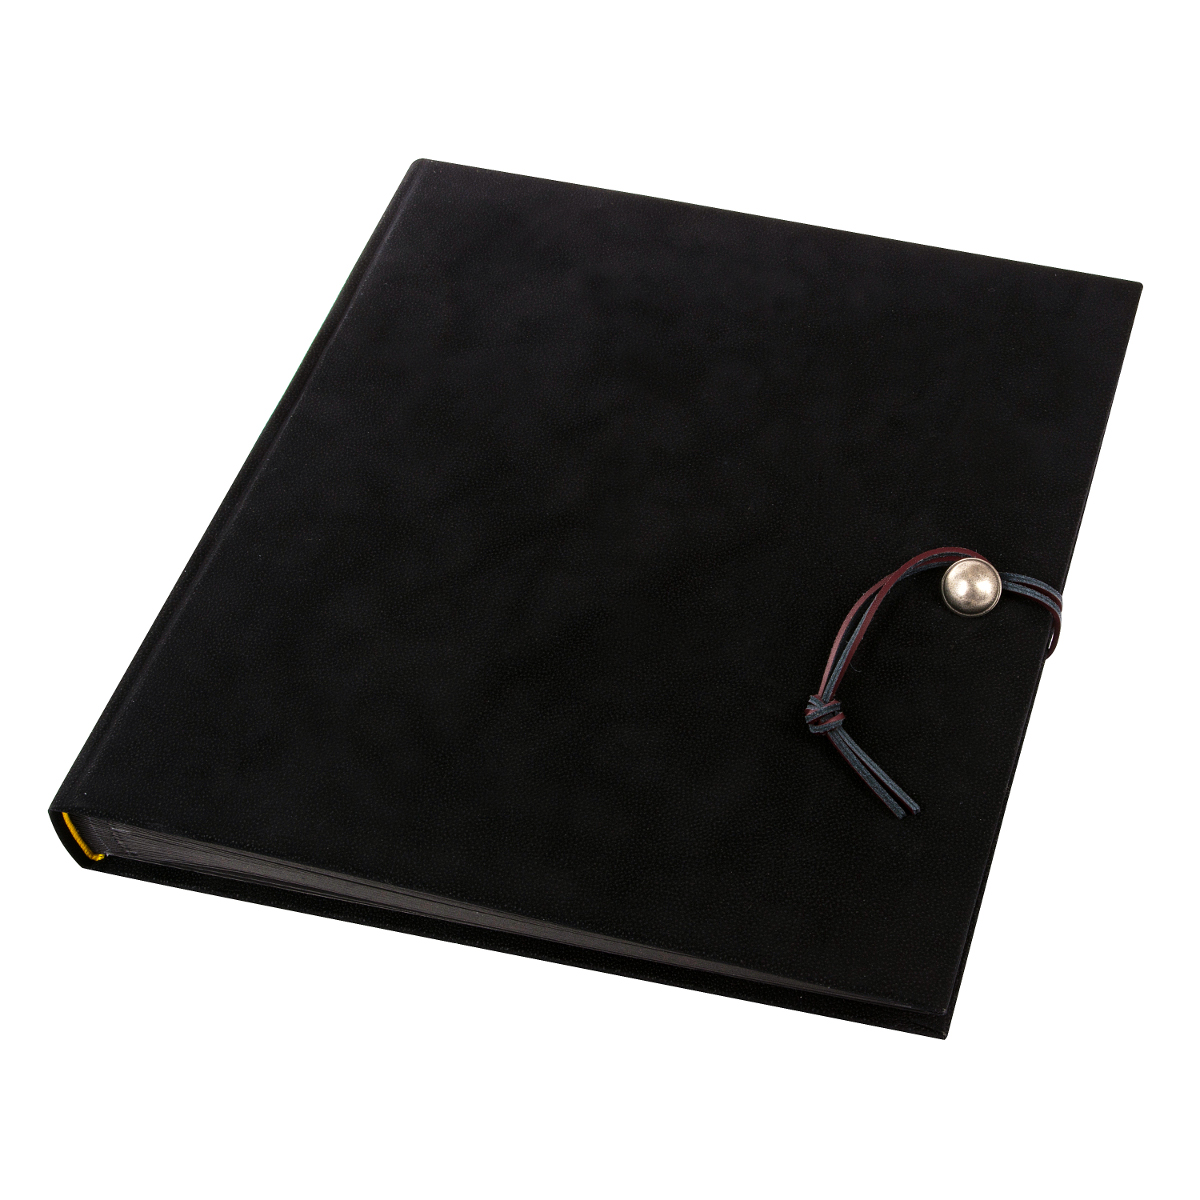 Fotoalbum Silberner Knopf * limited Edition *